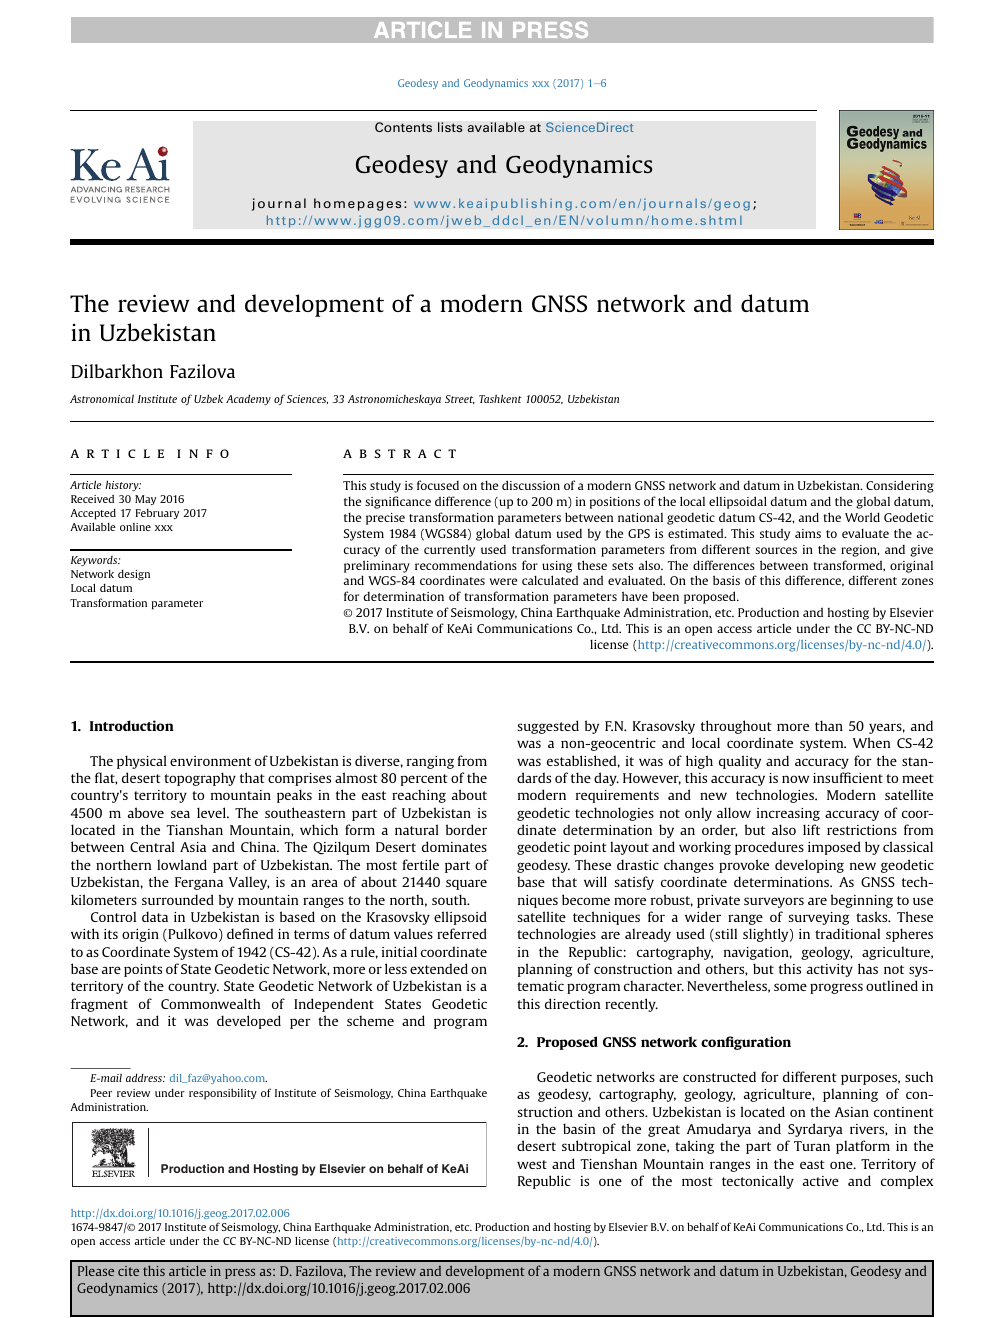 The review and development of a modern GNSS network and datum in